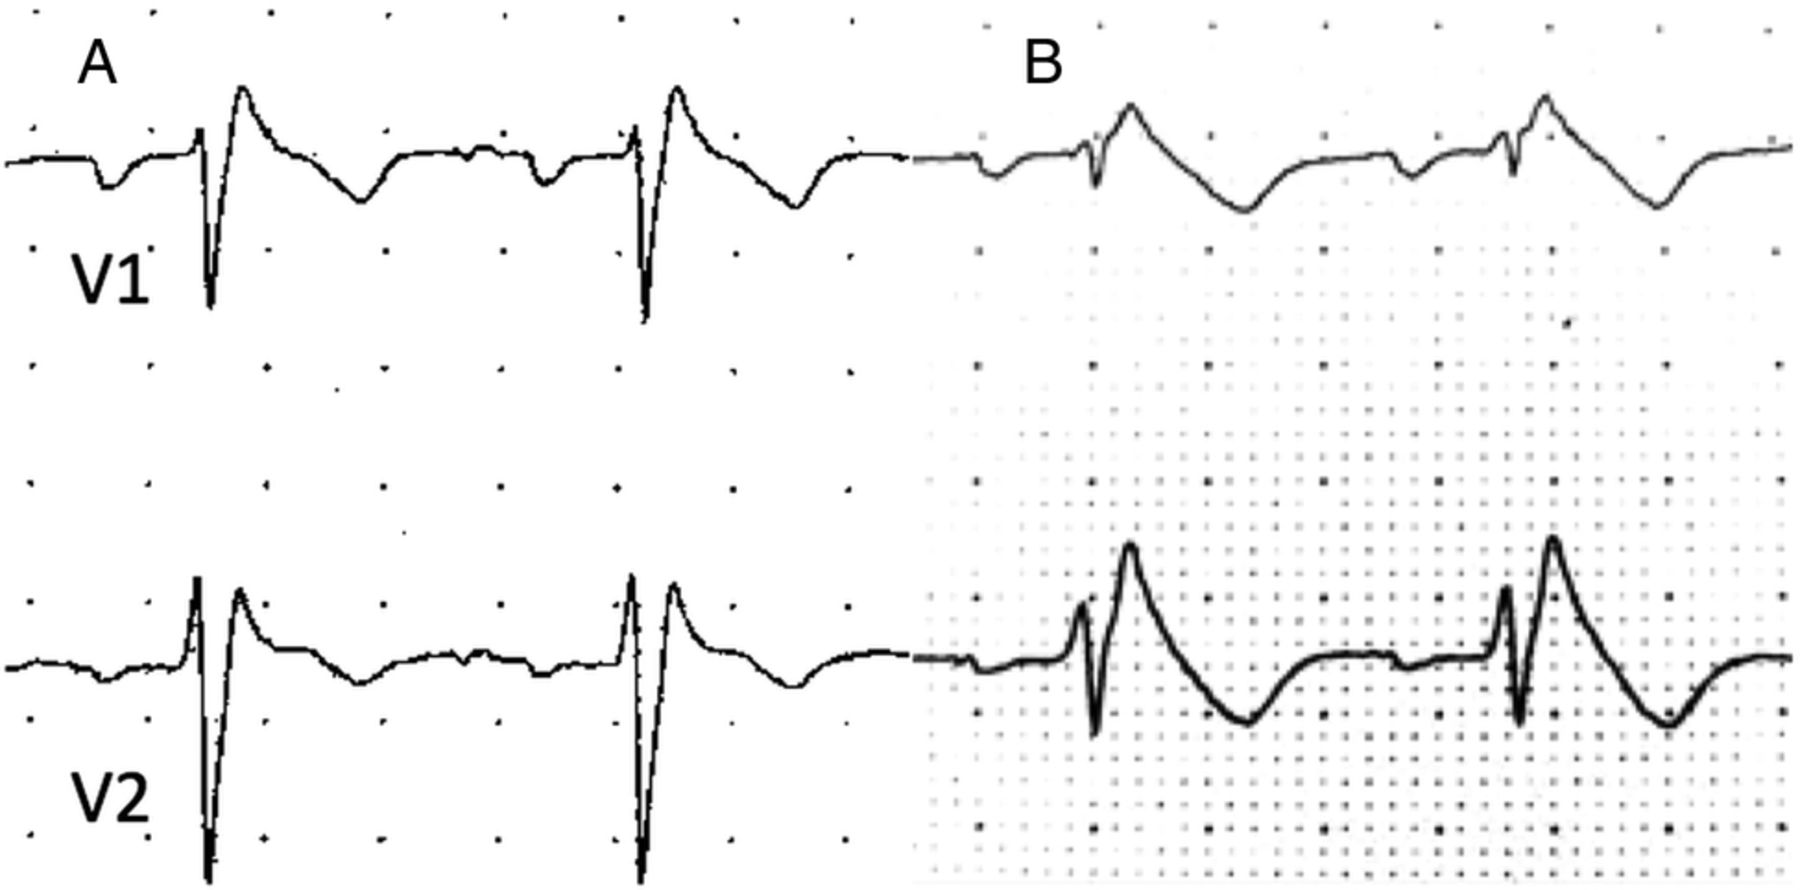 Feasibility And Outcomes Of Ajmaline Provocation Testing For Brugada Syndrome In Children In A